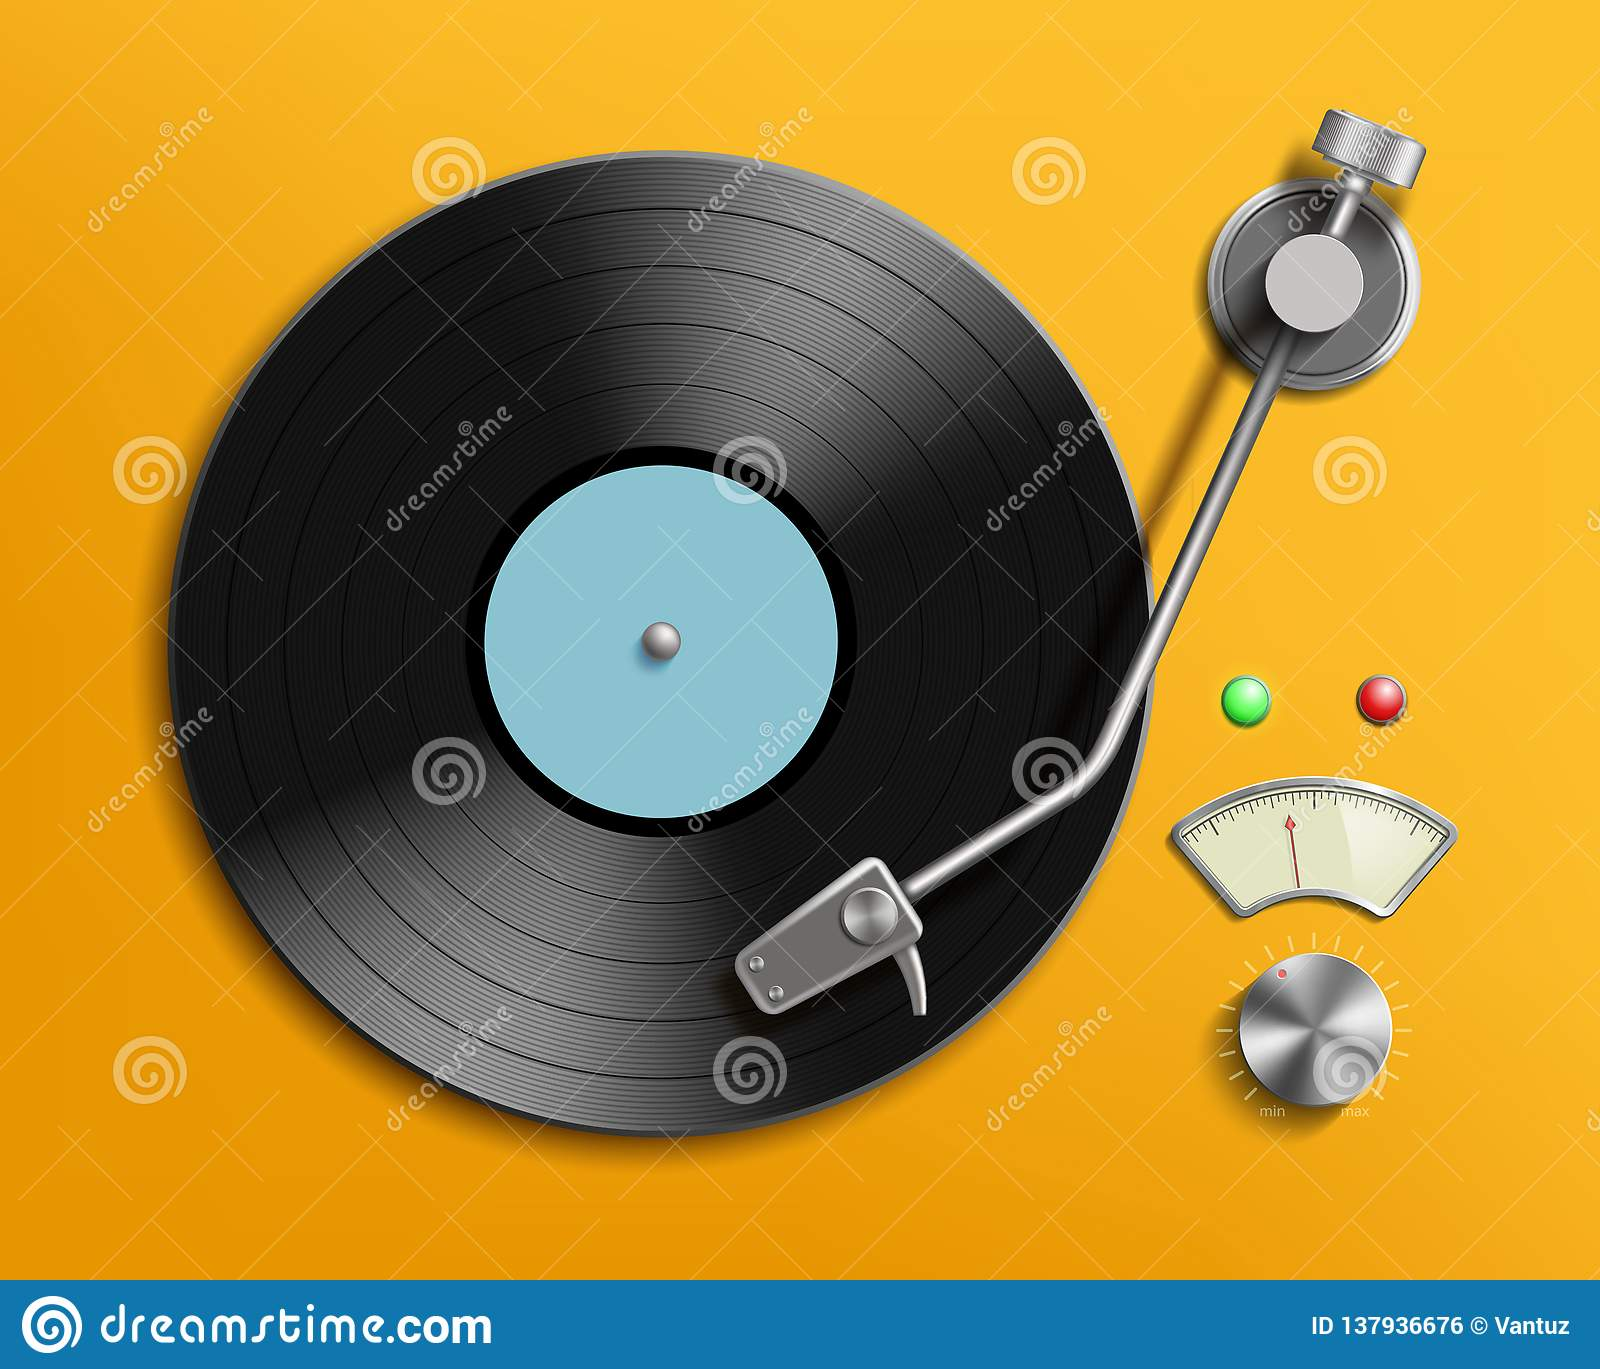 vintage record player with retro vinyl disc stock vector illustration of rock disco 137936676 https www dreamstime com vintage record player retro vinyl disc vector realistic illustration image137936676